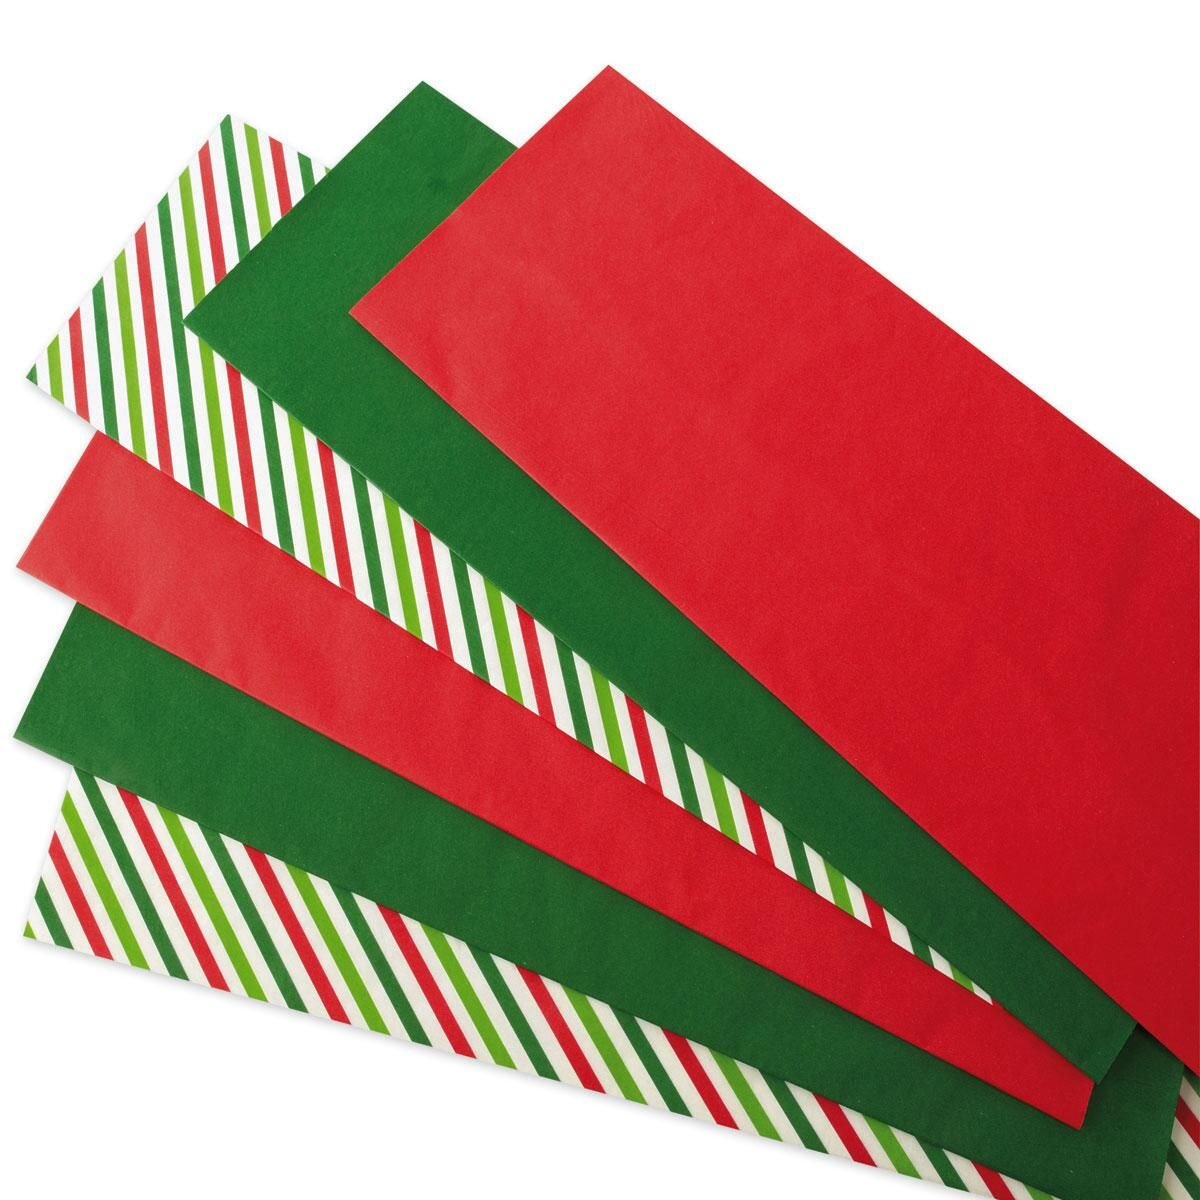 Holiday Tissue Sheets -  Buy 1 Get 1 Free